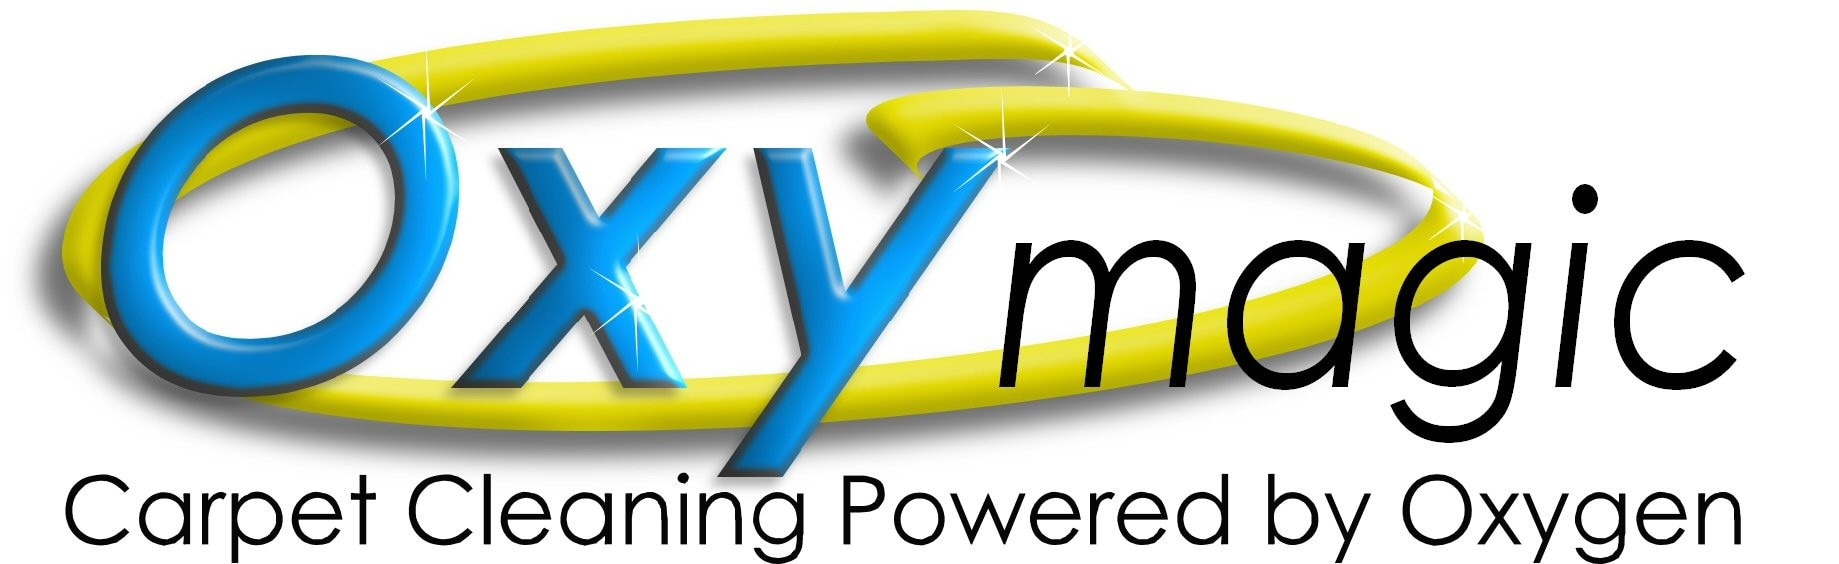 Oxymagic Carpet Cleaning The Greener Carpet Cleaner logo